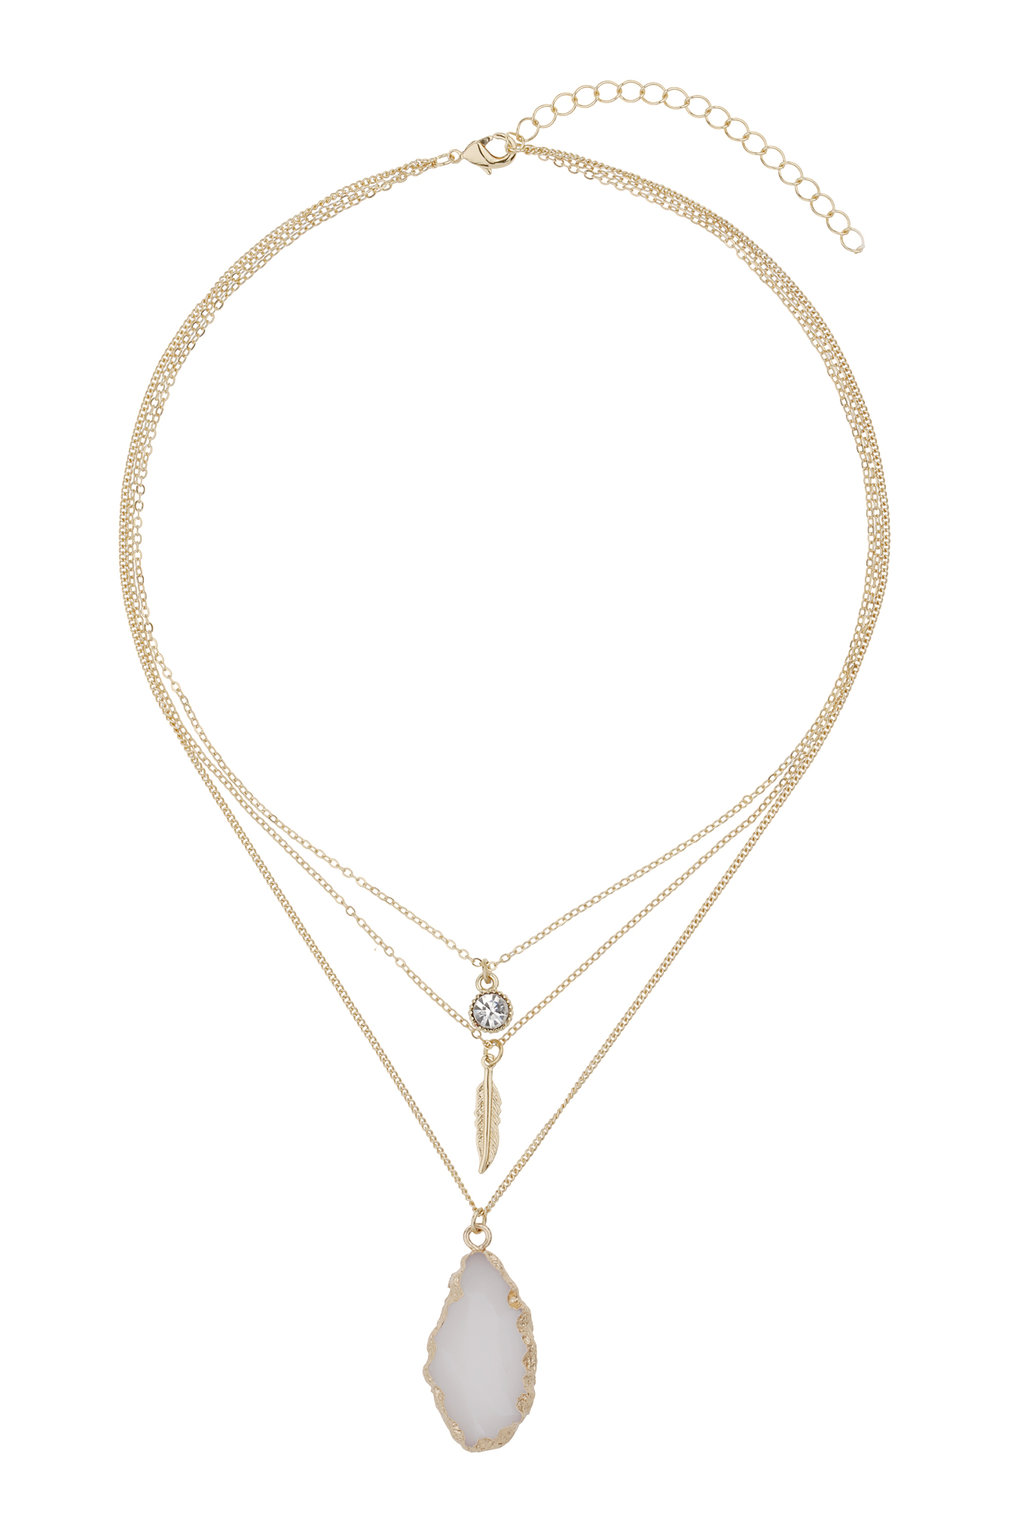 Wallis Fashion Stone and Charm multirow necklace